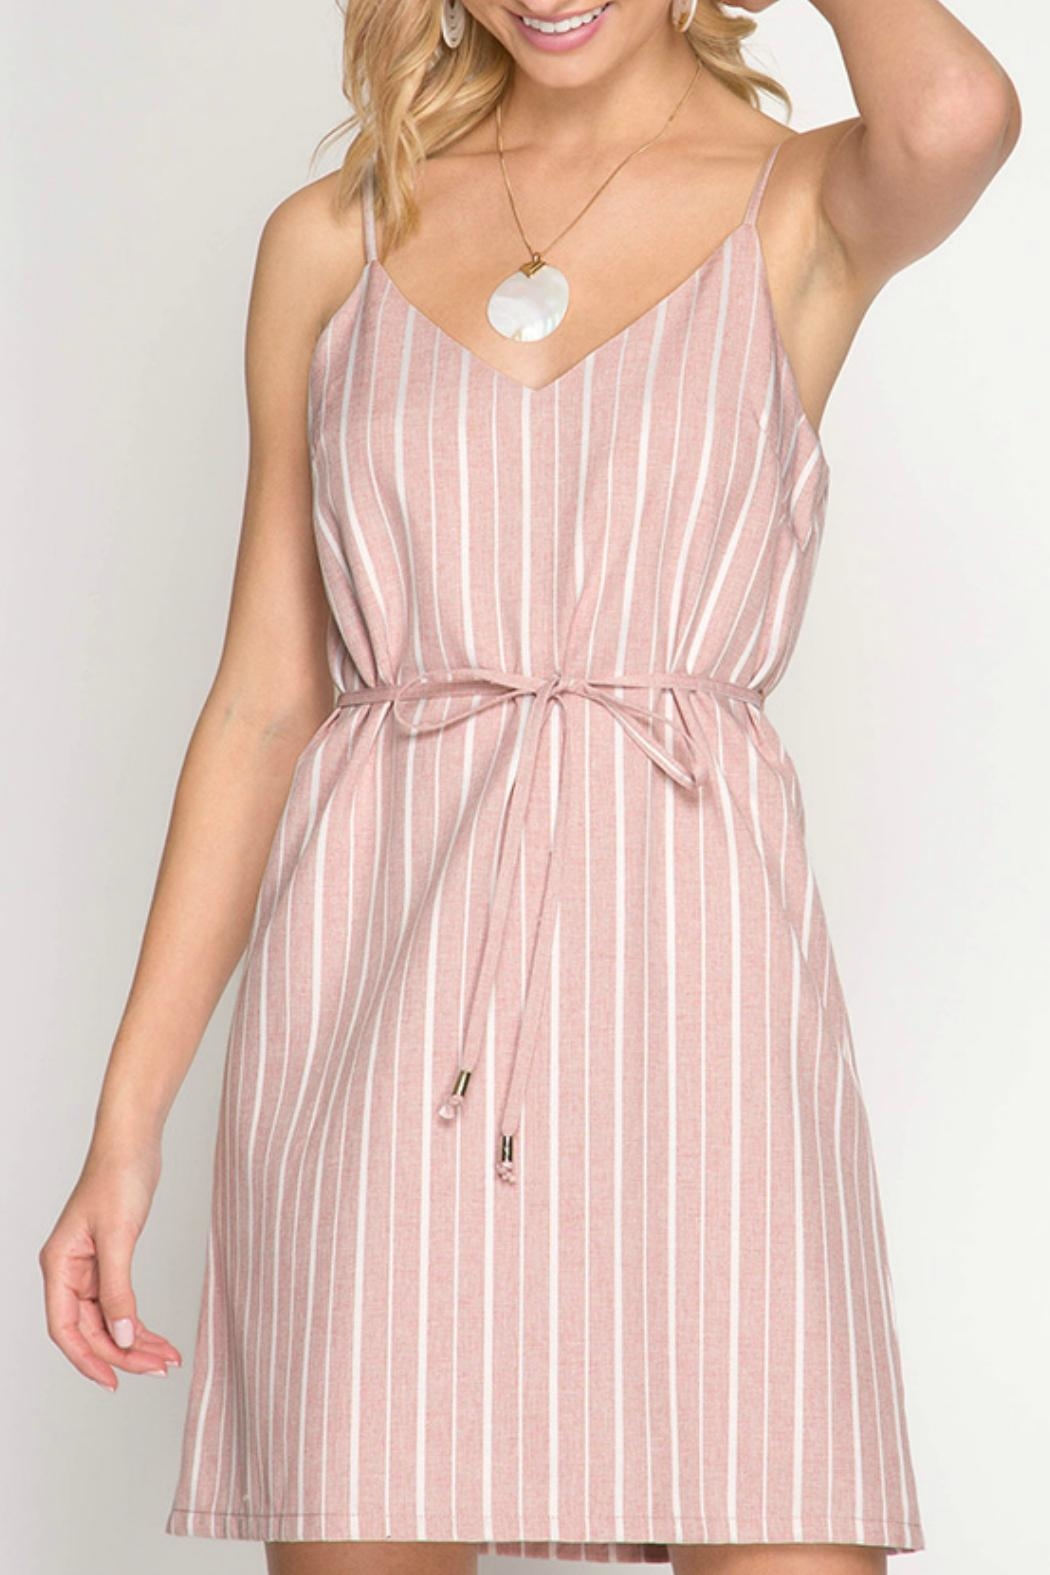 ALB Anchorage Pink Striped Shift-Dress - Main Image